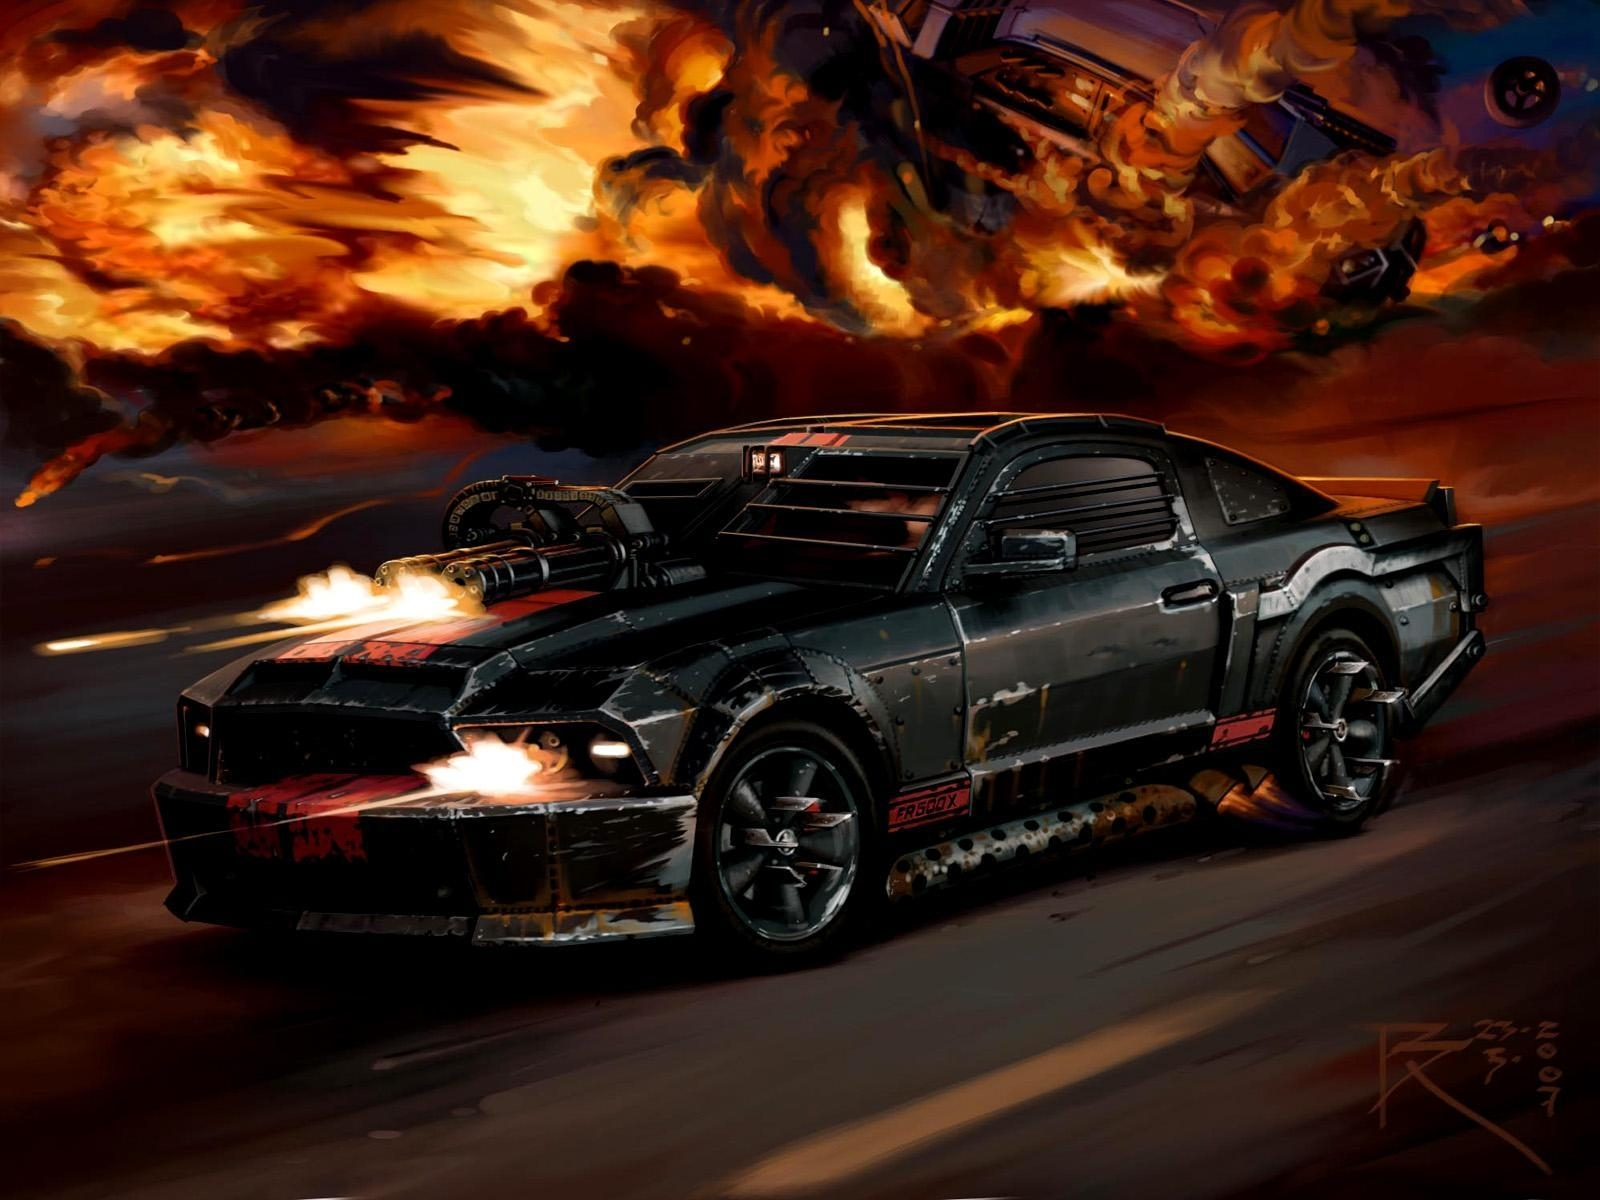 Download Desktop Wallpaper Cool Car - Cool car games